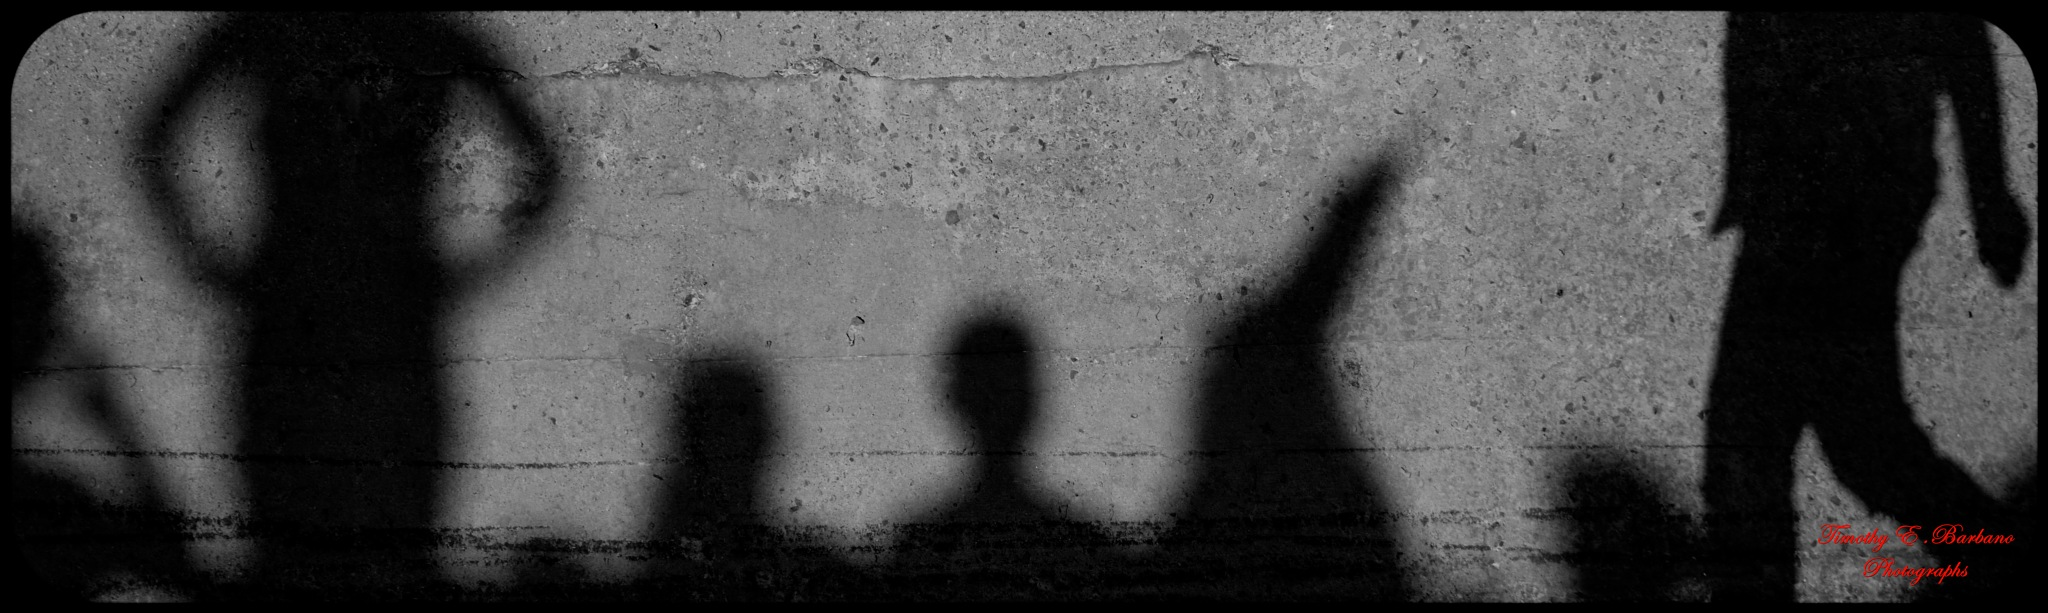 """' only a shadow knows""""  by T.E.Barbano"""